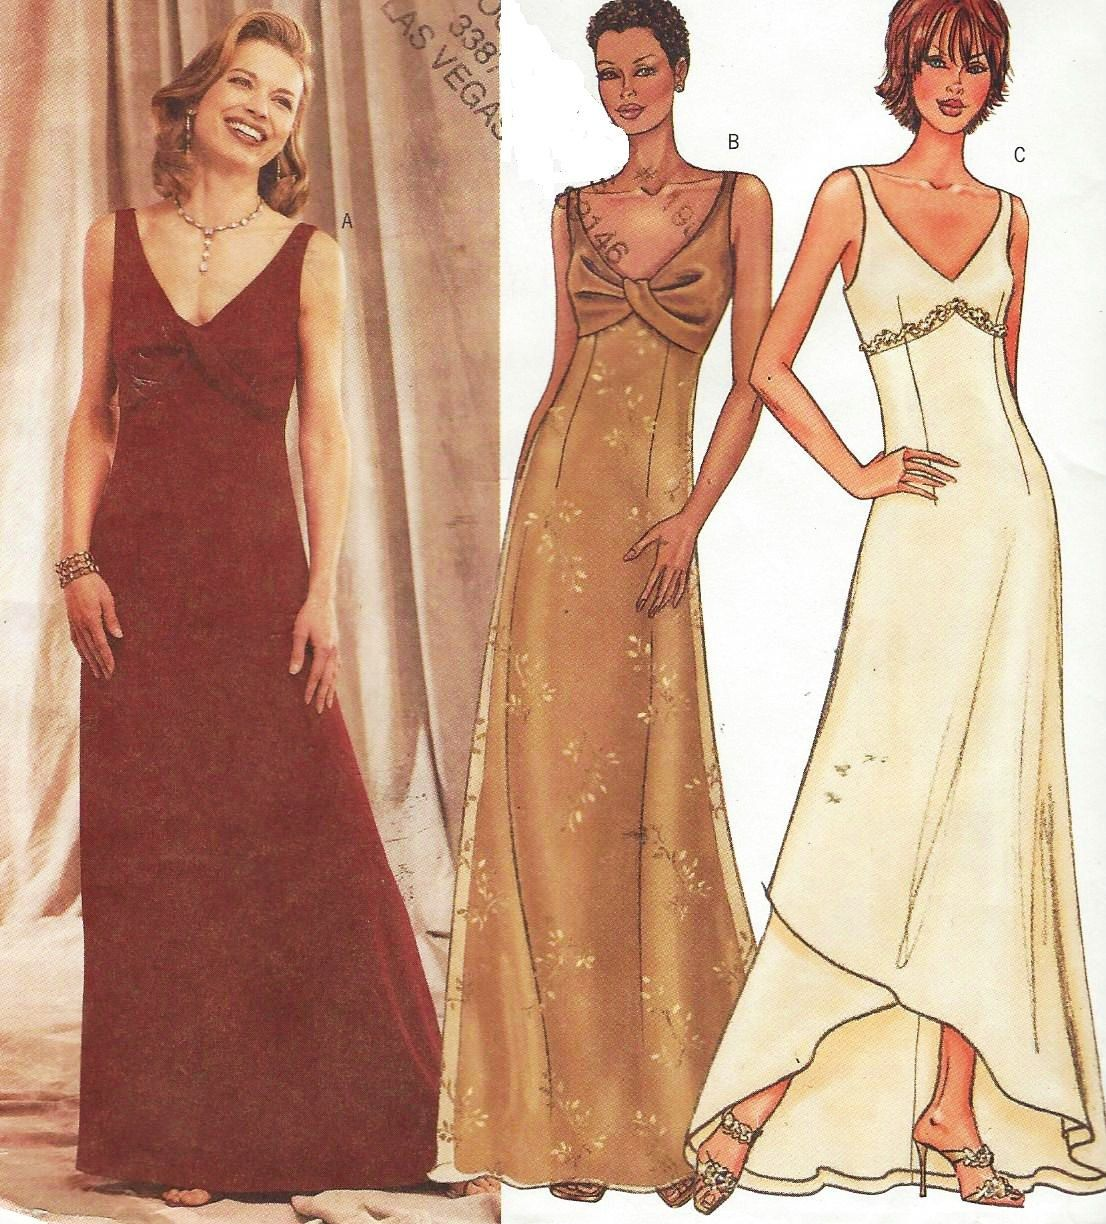 Butterick sewing pattern 3451 womens v neckline evening dress butterick sewing pattern 3451 womens v neckline evening dress empire waist size 8 10 12 bust 31 to 34 uncut prom dress or bridesmaid by cloescloset on etsy jeuxipadfo Image collections